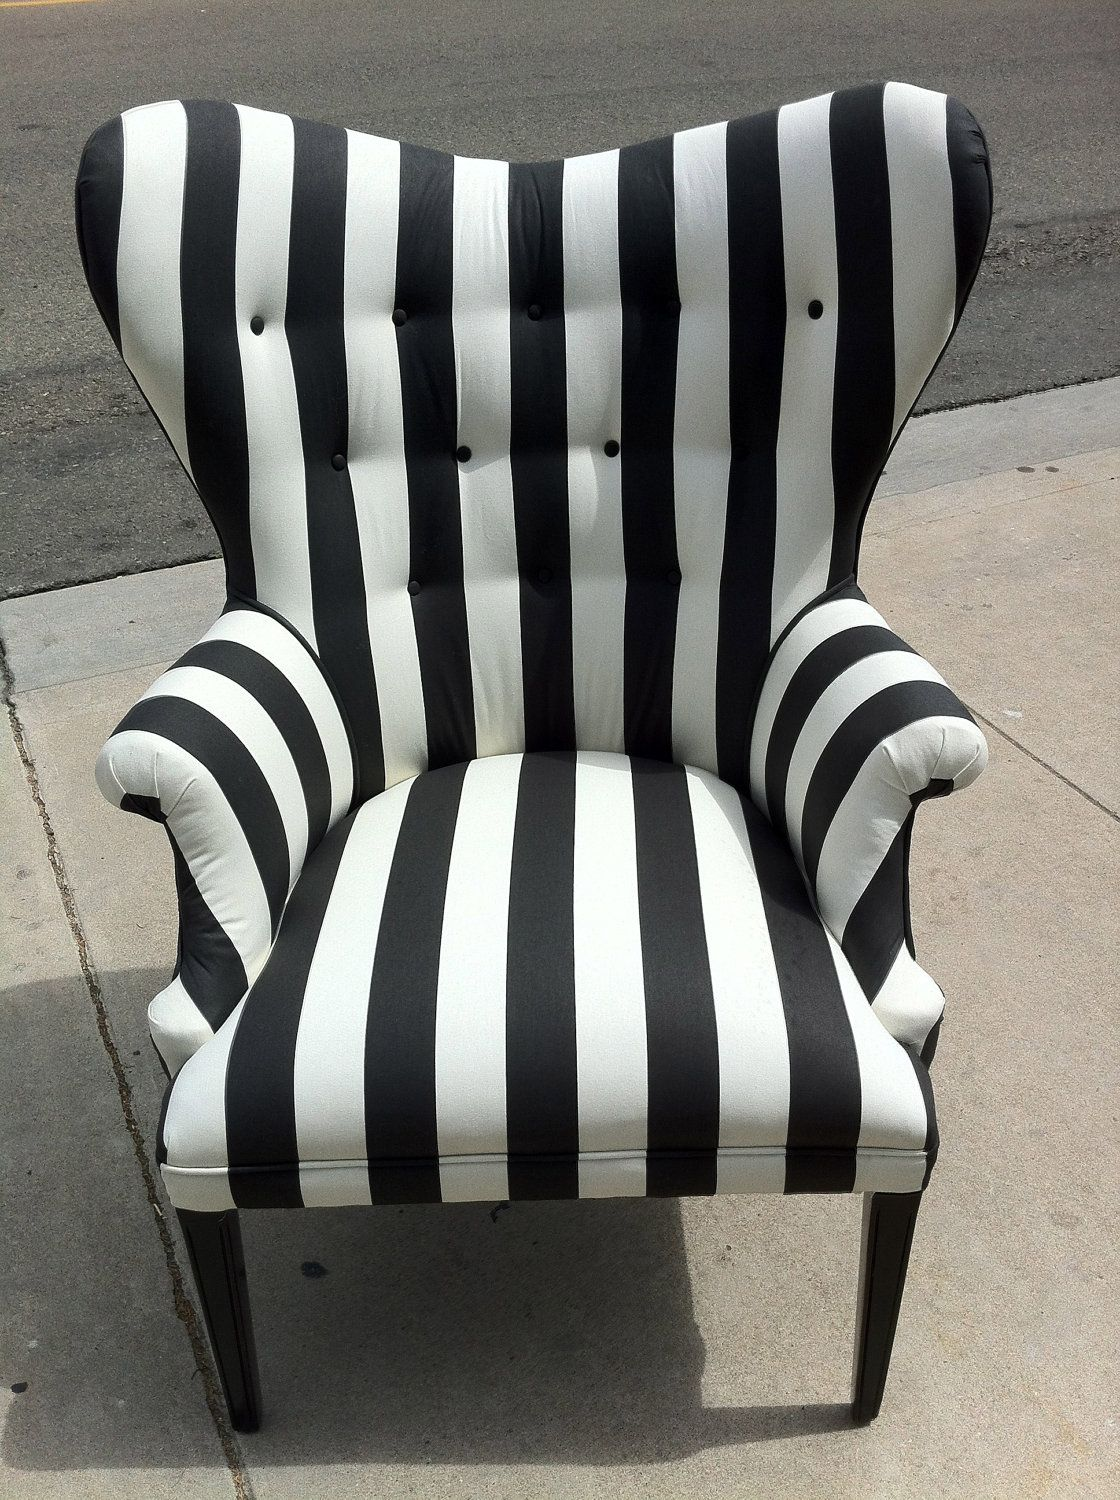 black and white striped chair by poeticrockstar on etsy home decor pinterest etsy black. Black Bedroom Furniture Sets. Home Design Ideas